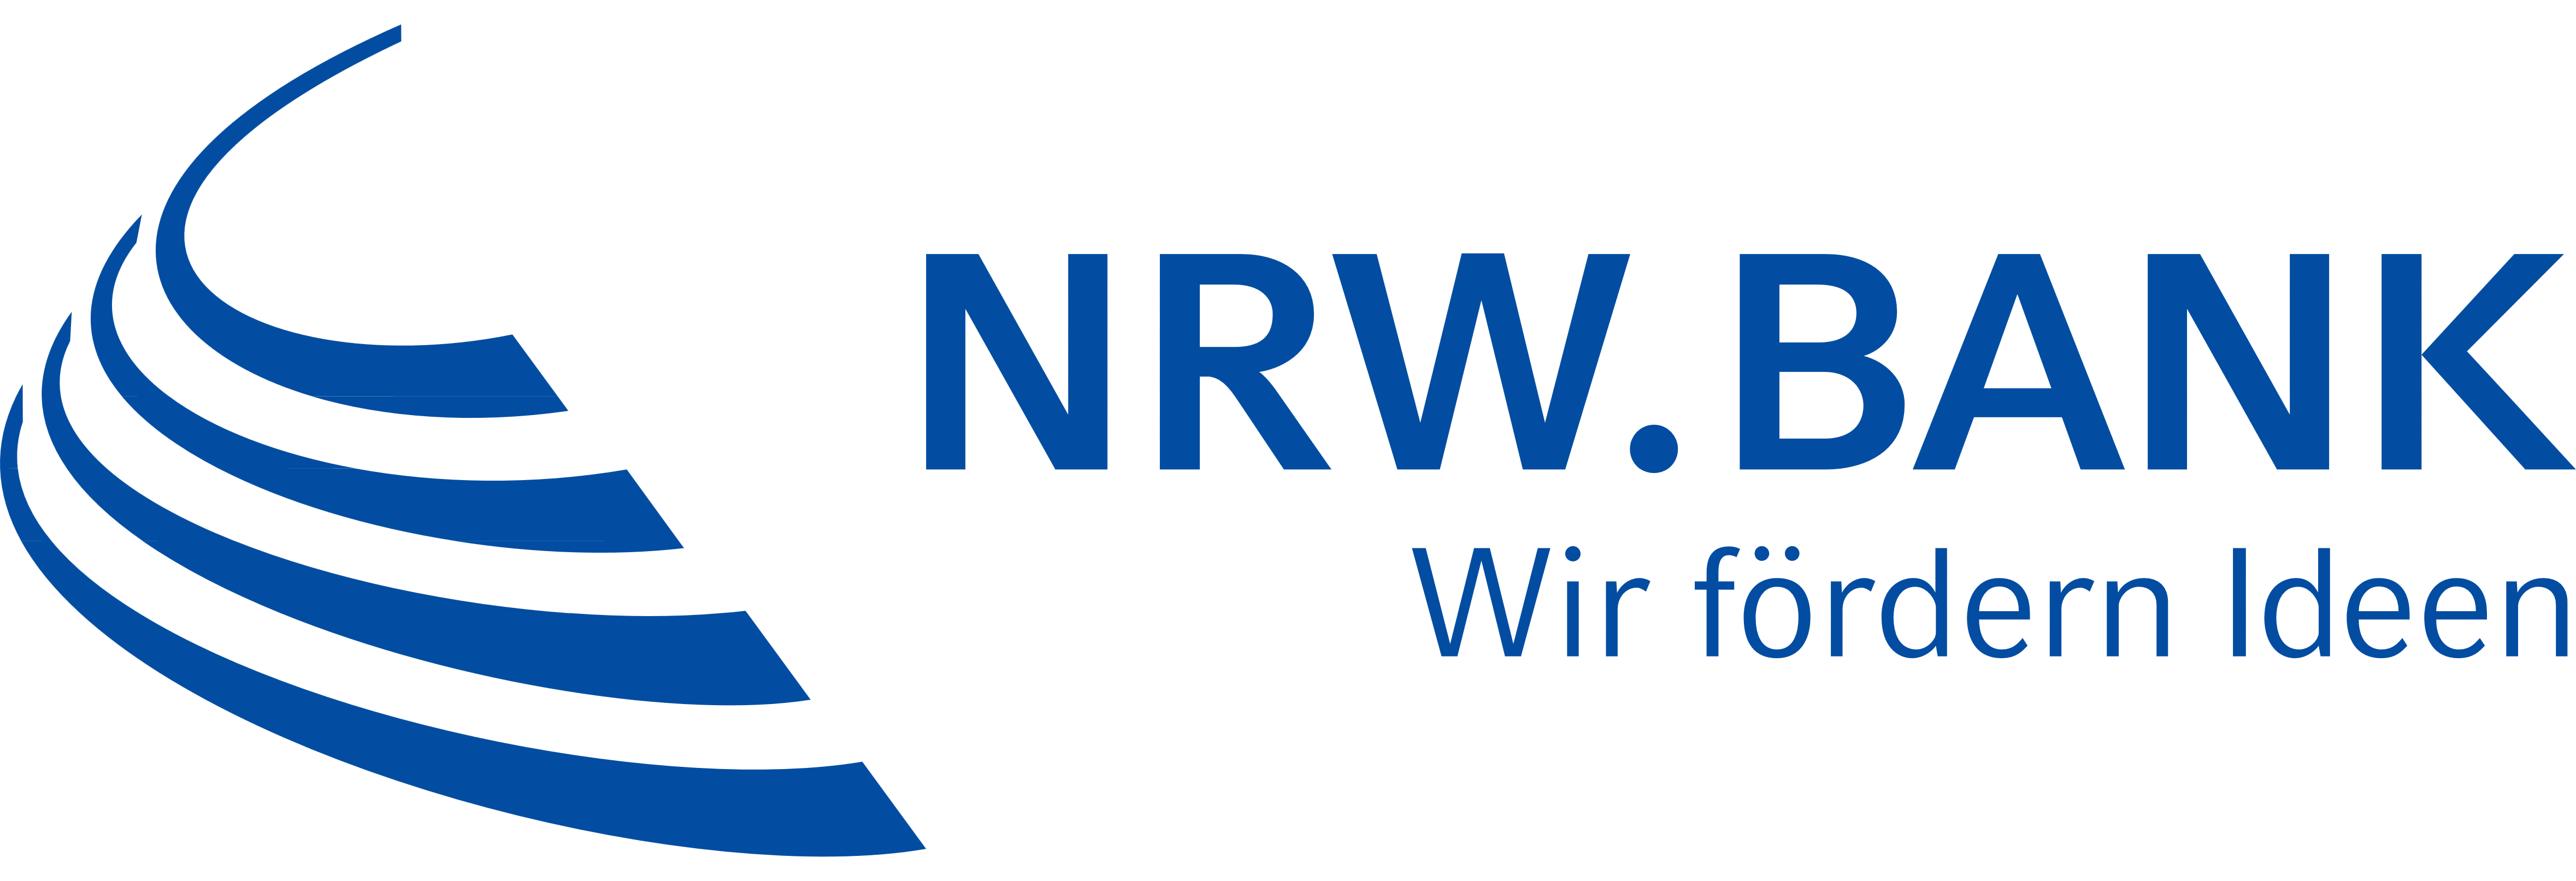 nrw bank logos download #32740